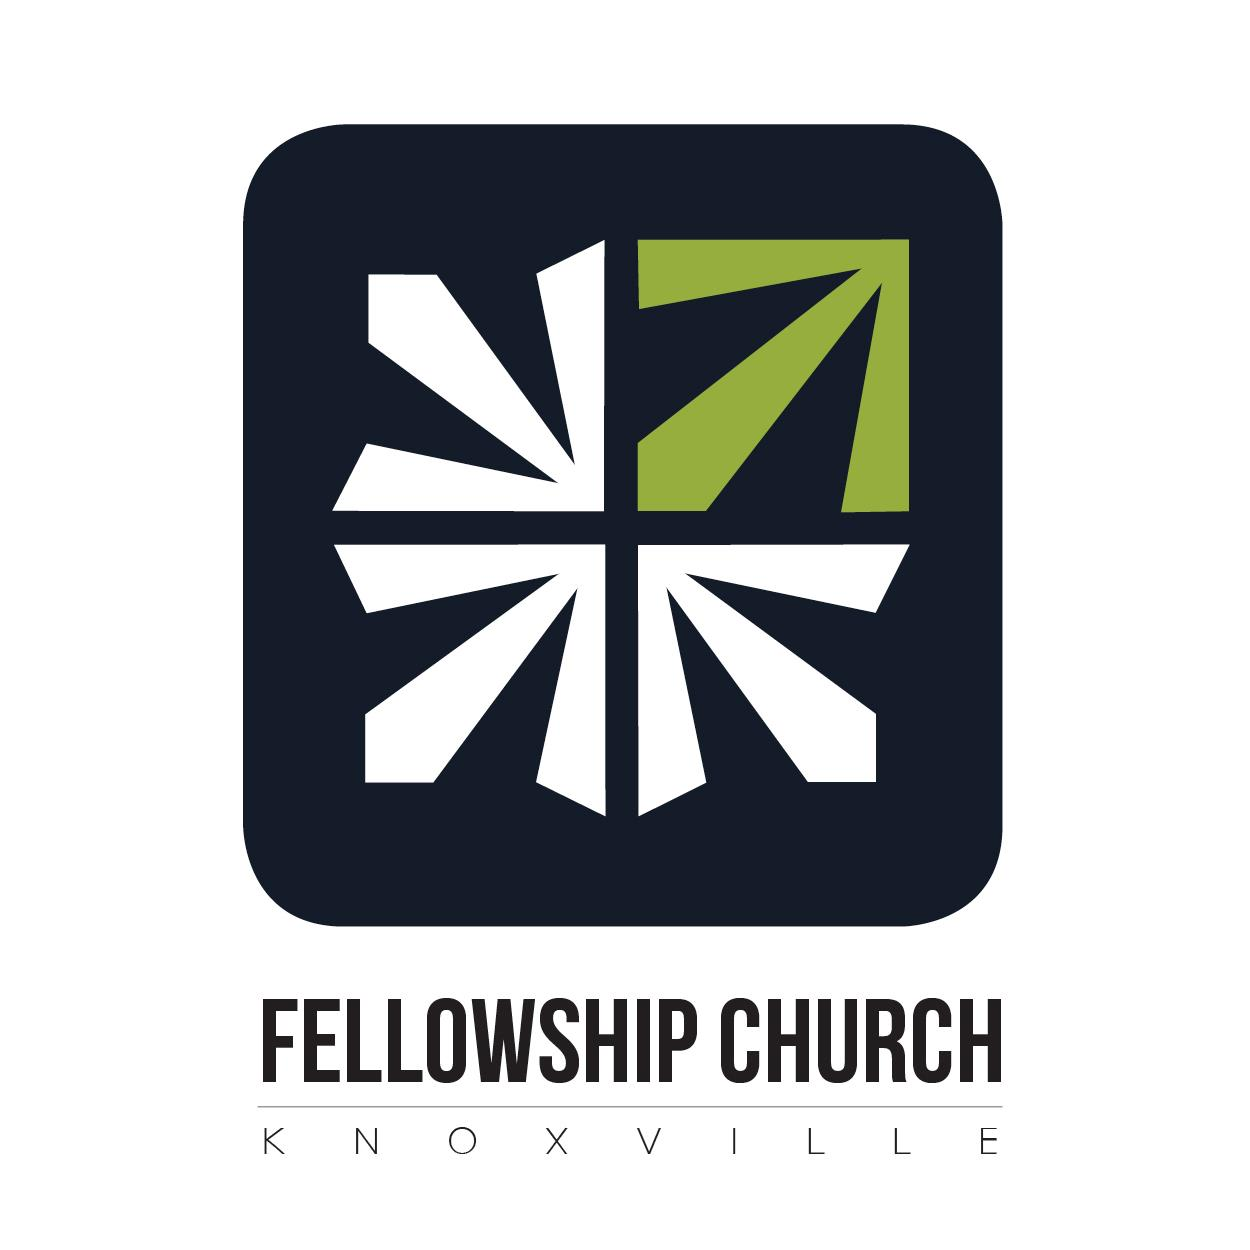 Fellowship Church Knoxville Logo - Knoxville Habitat for Humanity